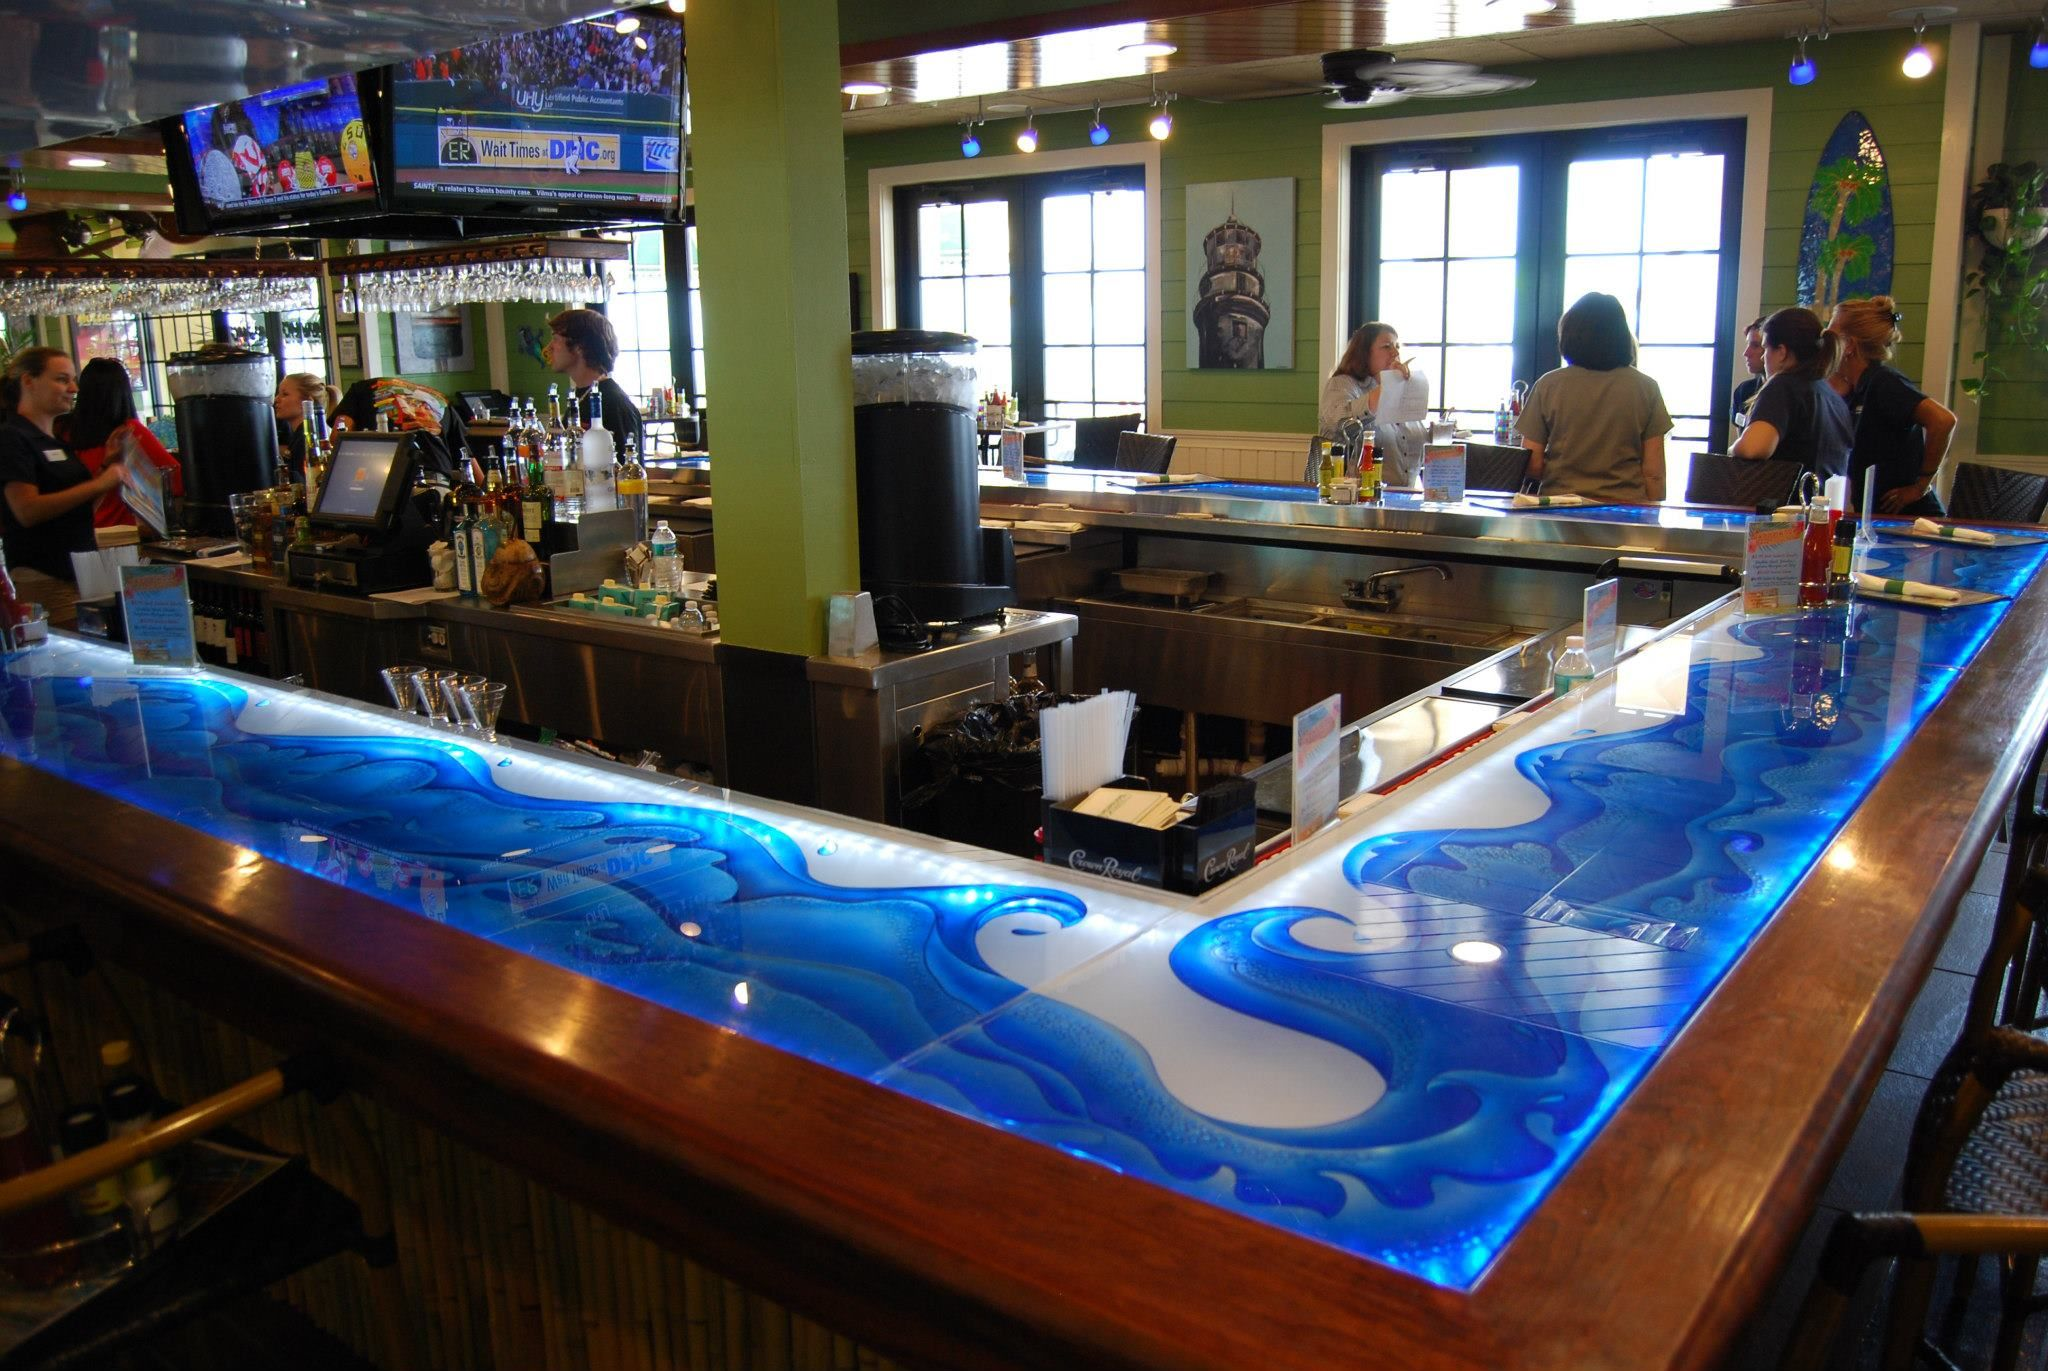 Amazing Glass Countertops Glass Counter Tops Intended For Glass Countertops